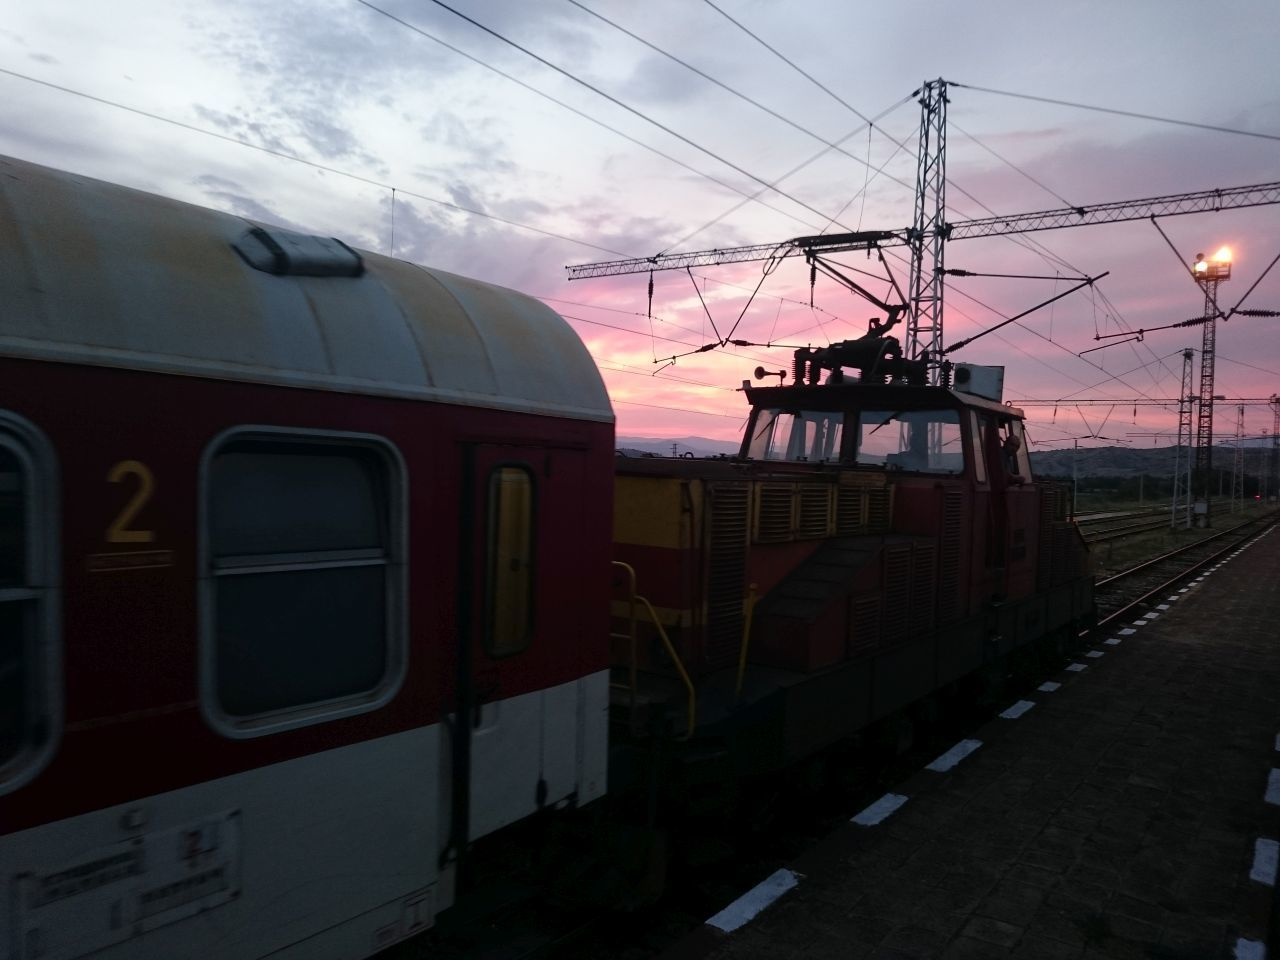 A sunset on the rails